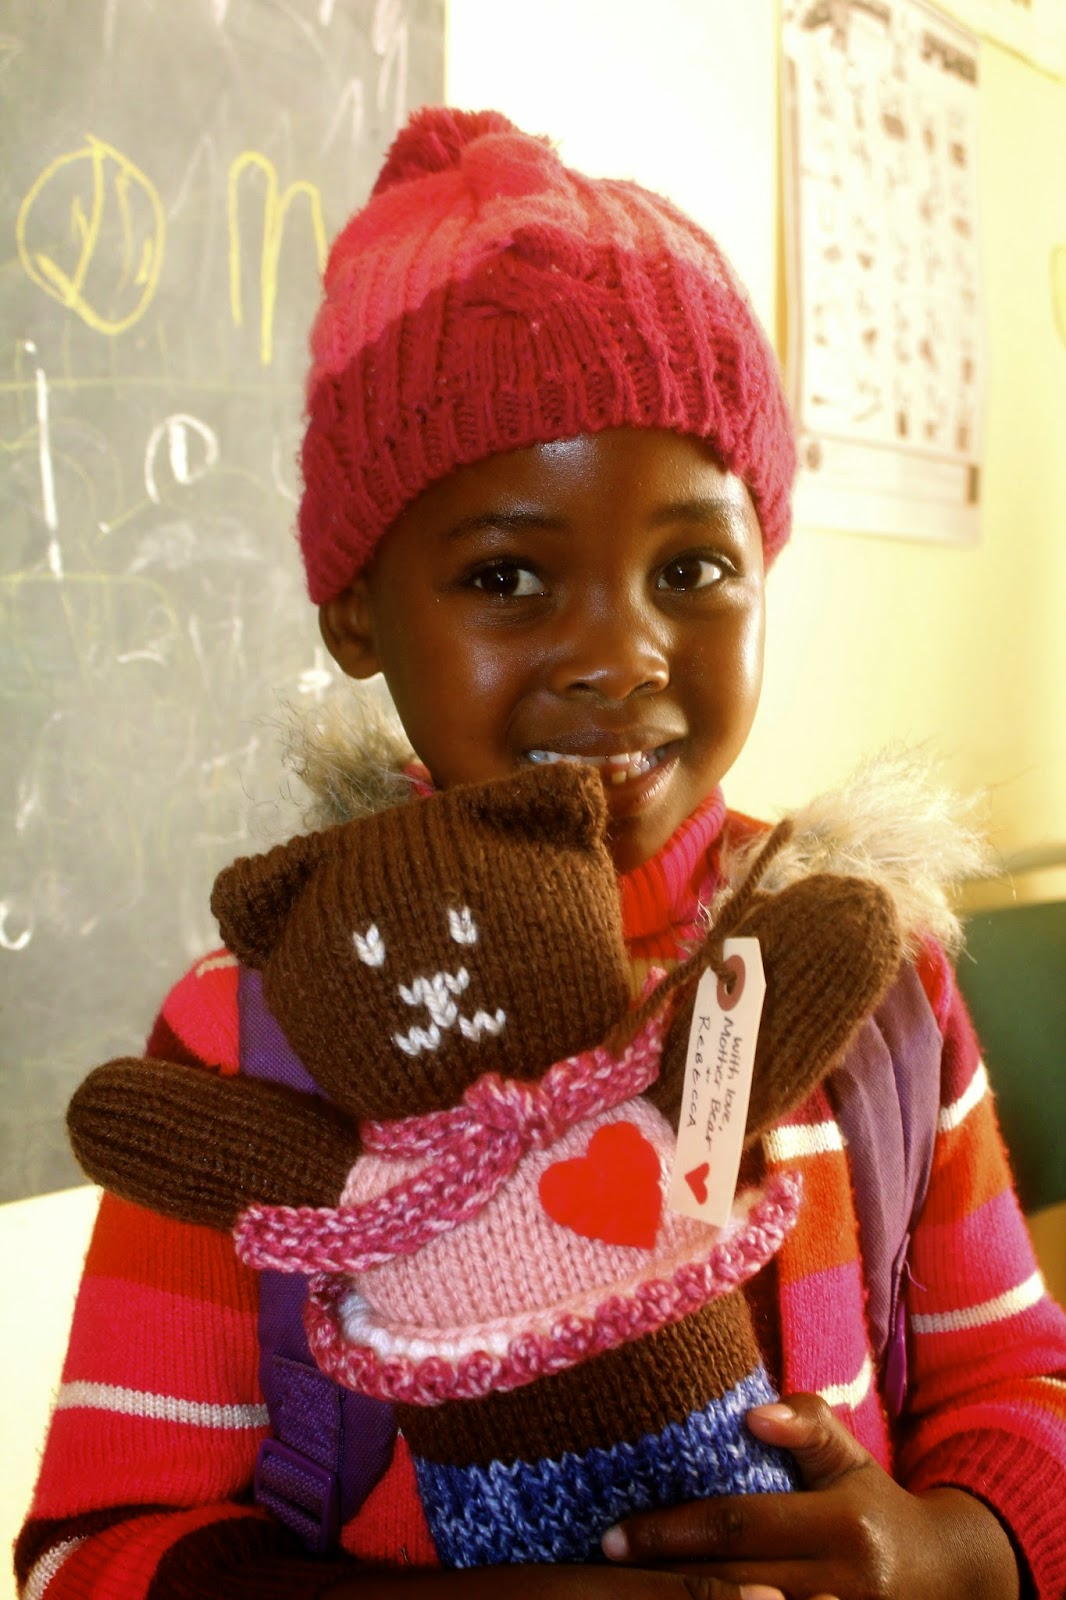 The Mother Bear Project is run out of Minnesota. They send teddy bears to kids, so that they can have a toy that is completely their own and to provide emotional comfort. I gave them out to the kindergarteners at the elementary school, and this girl had particularly pretty smile.